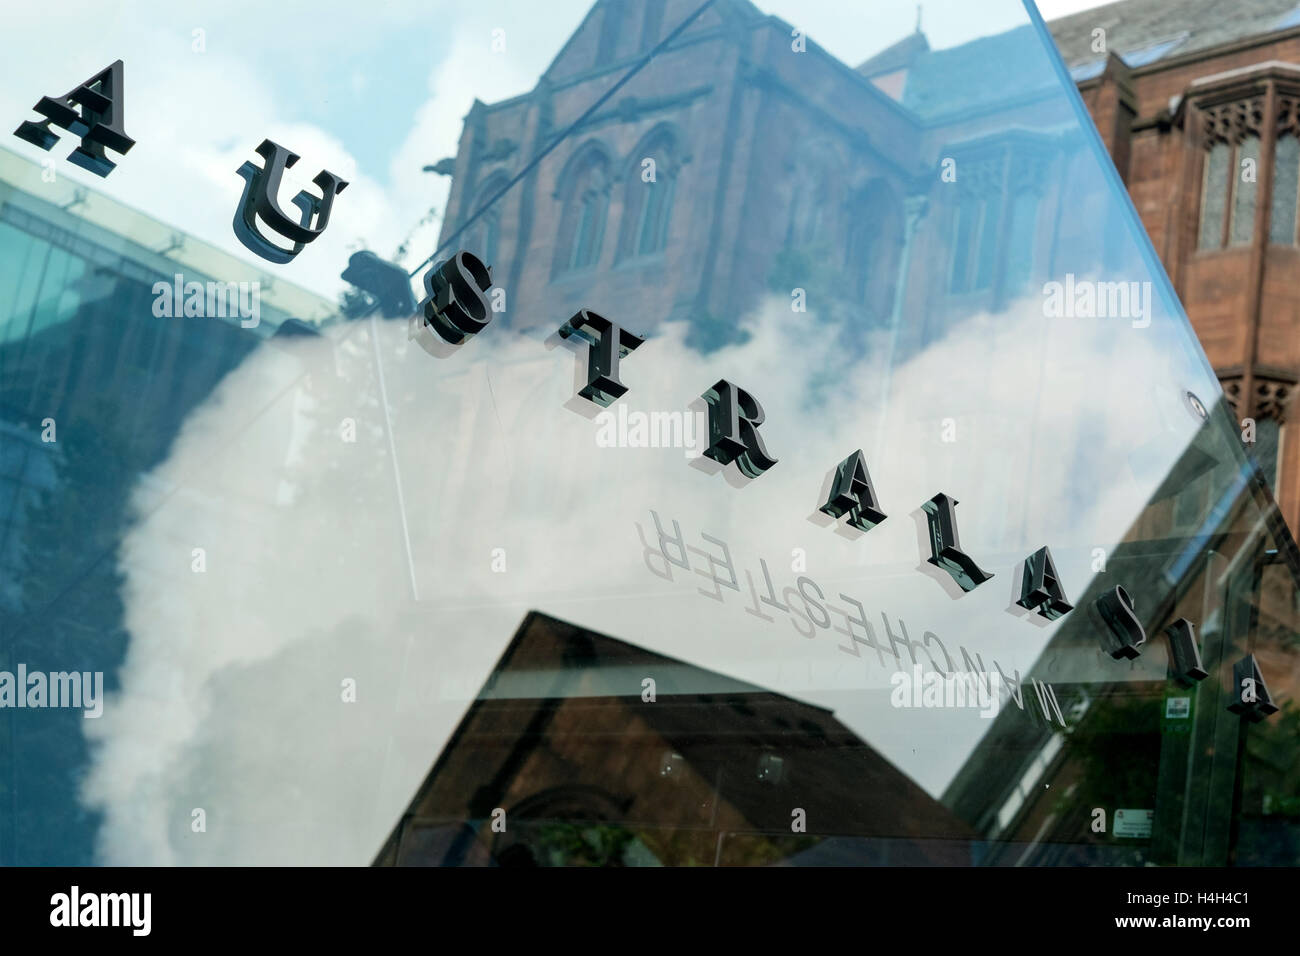 Australasia bar & restaurant situated underground on Manchester's Deansgate, Manchester, UK. - Stock Image